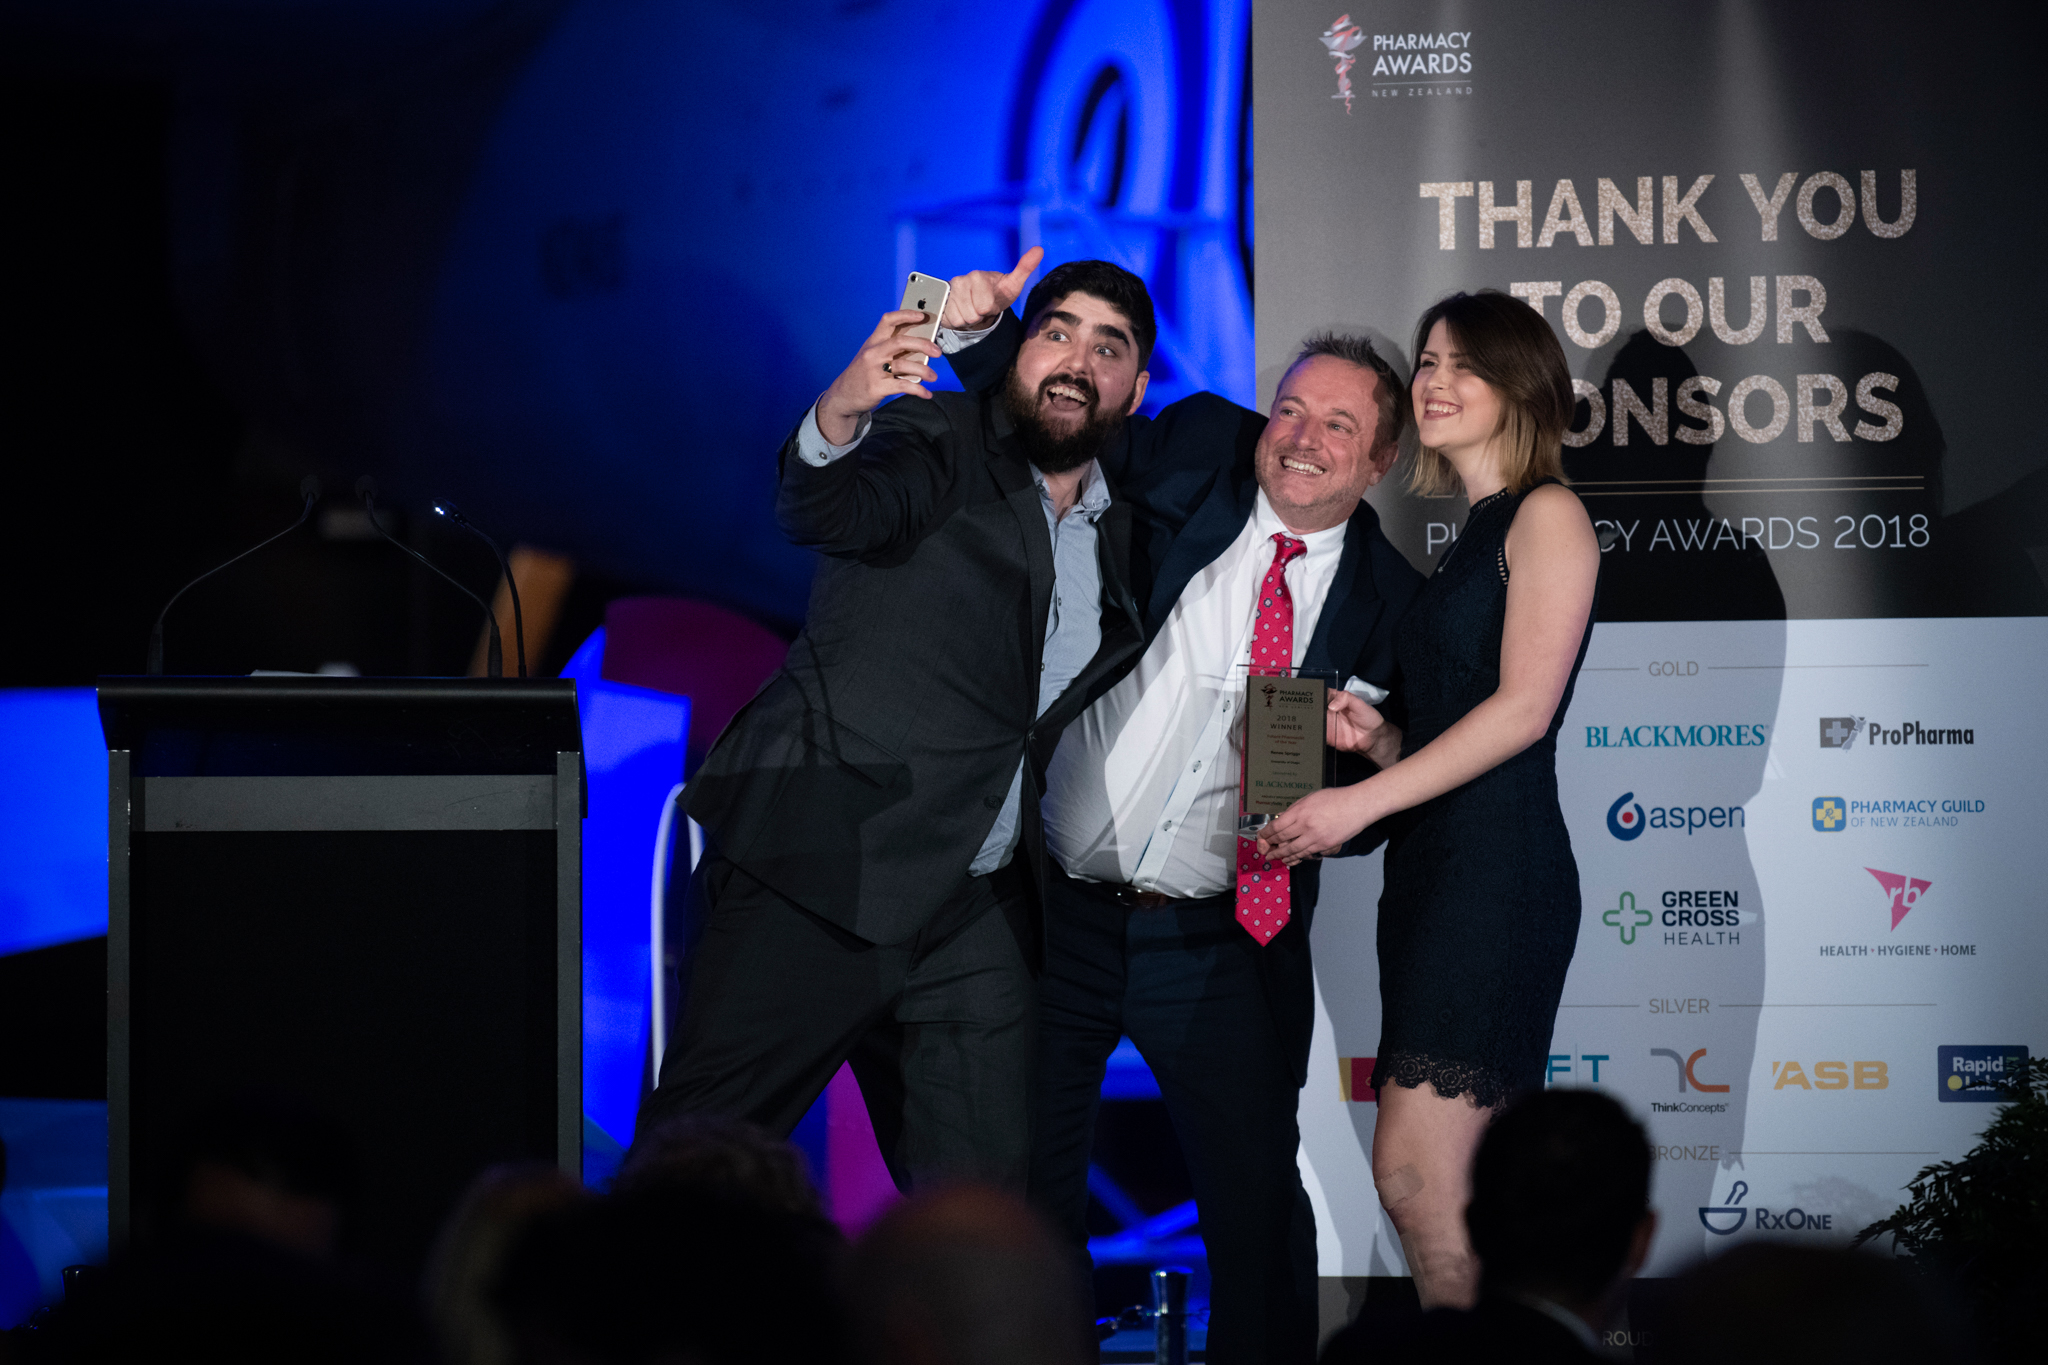 Pharmacy-Awards-2018_DS8_7125_lowres